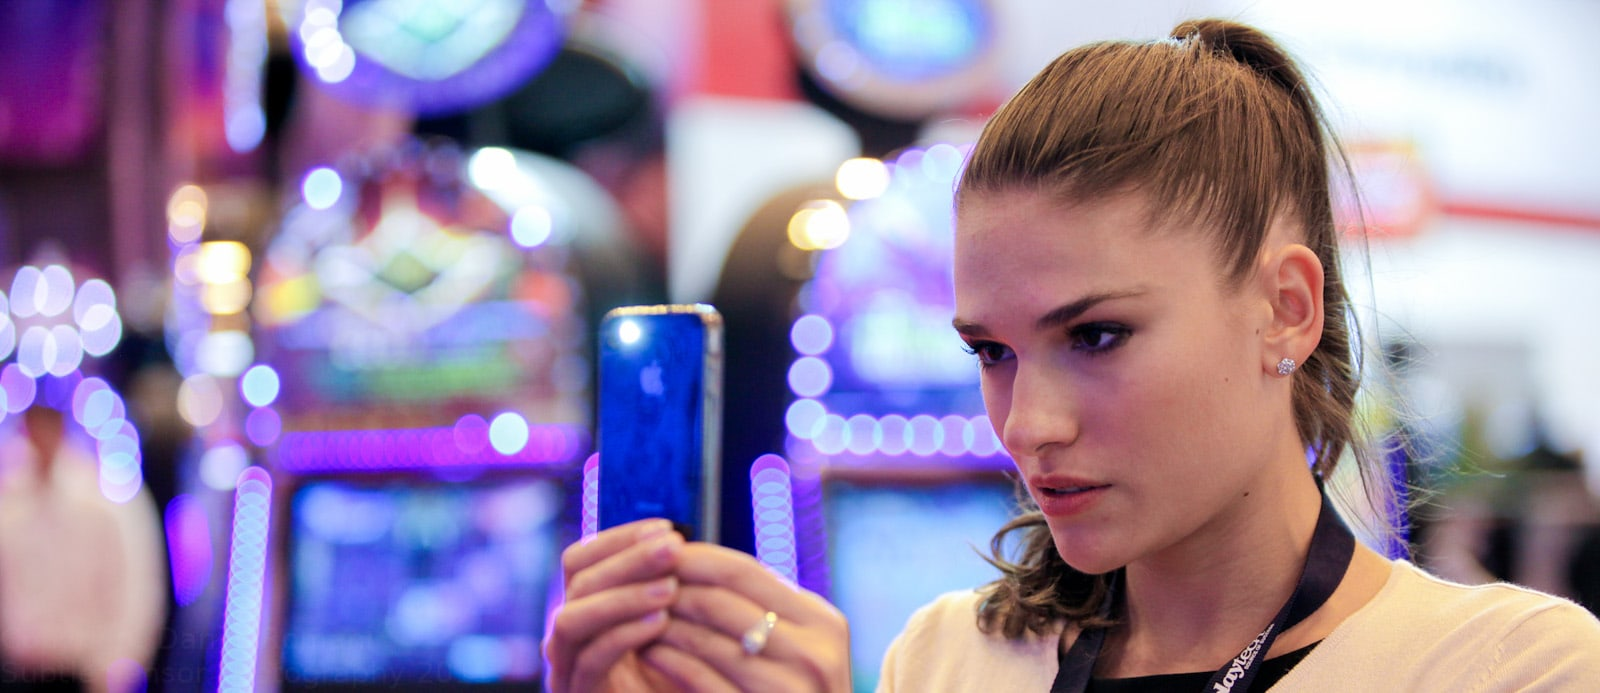 Photograph of a girl using an iPhone camera with neon lights in background